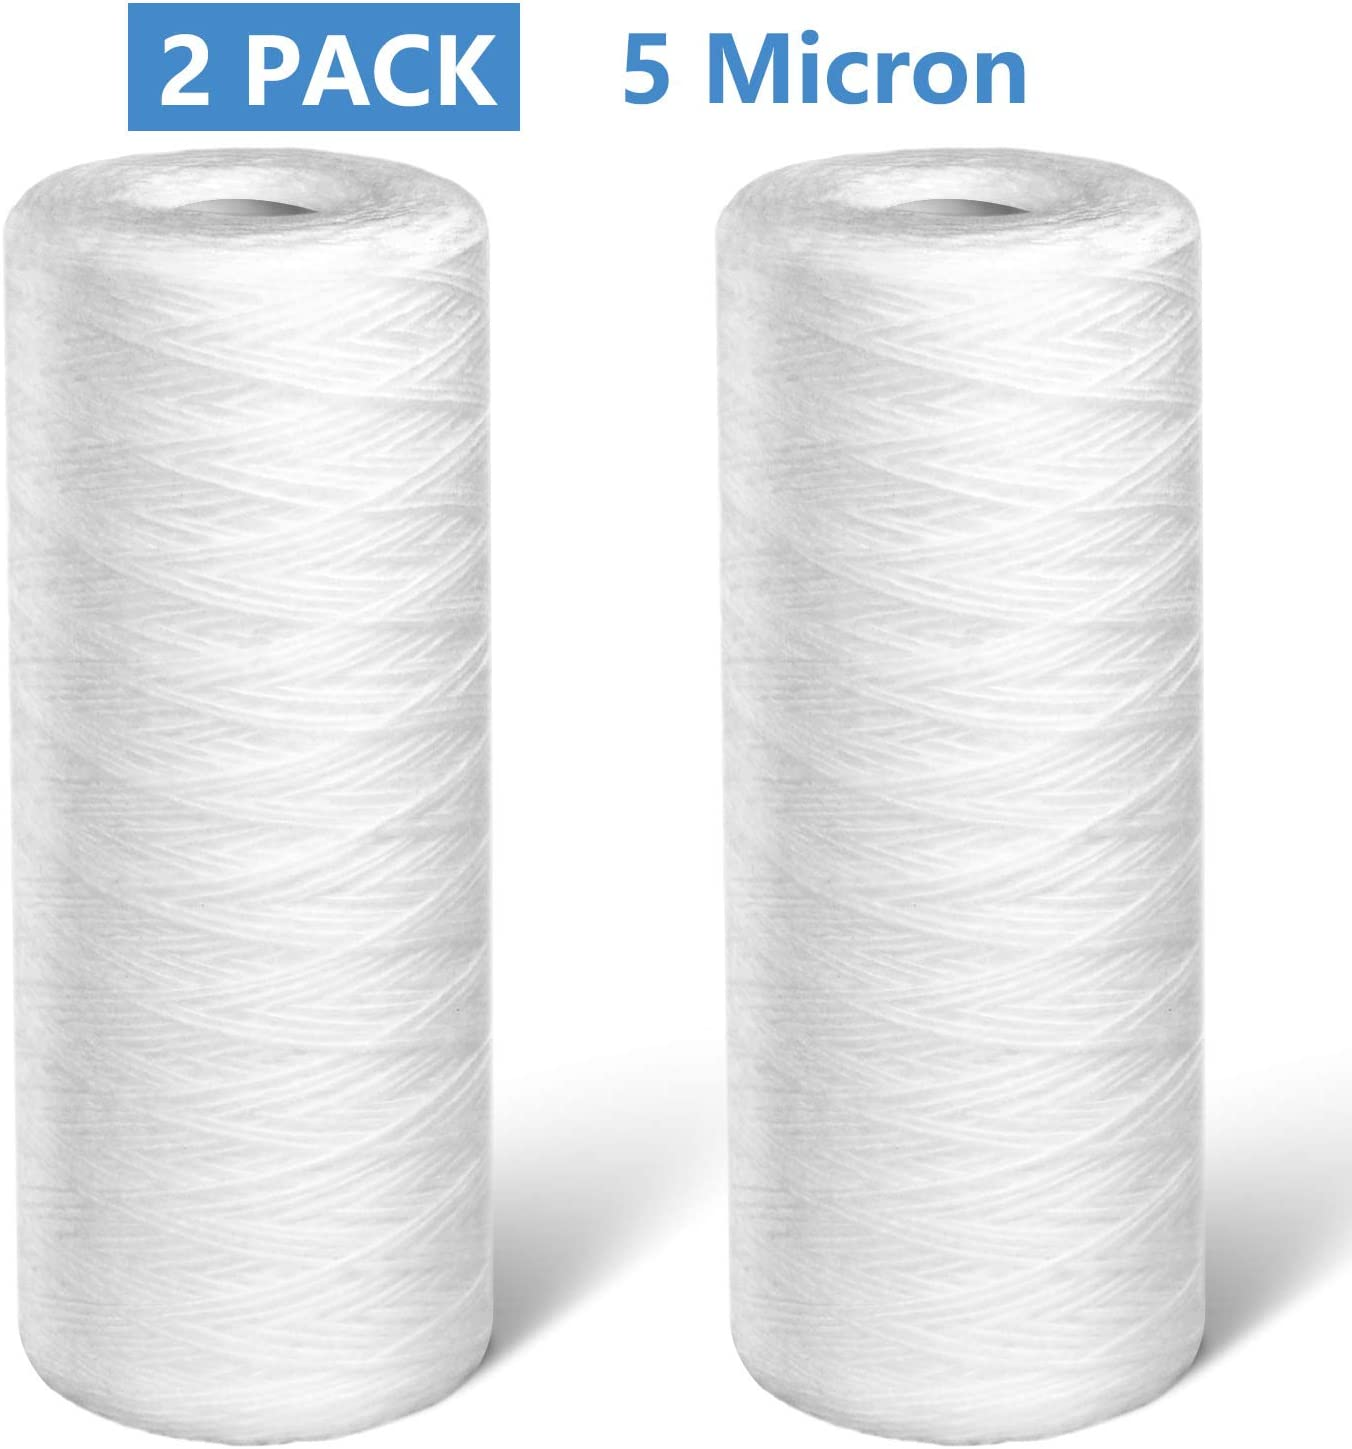 "Lafiucy 5 Micron 10"" x 4.5"" String Wound Sediment Water Filter Cartridge,2 Pack,Whole House Sediment Filtration, Universal Replacement for 10 inch Reverse Osmosis Unit"